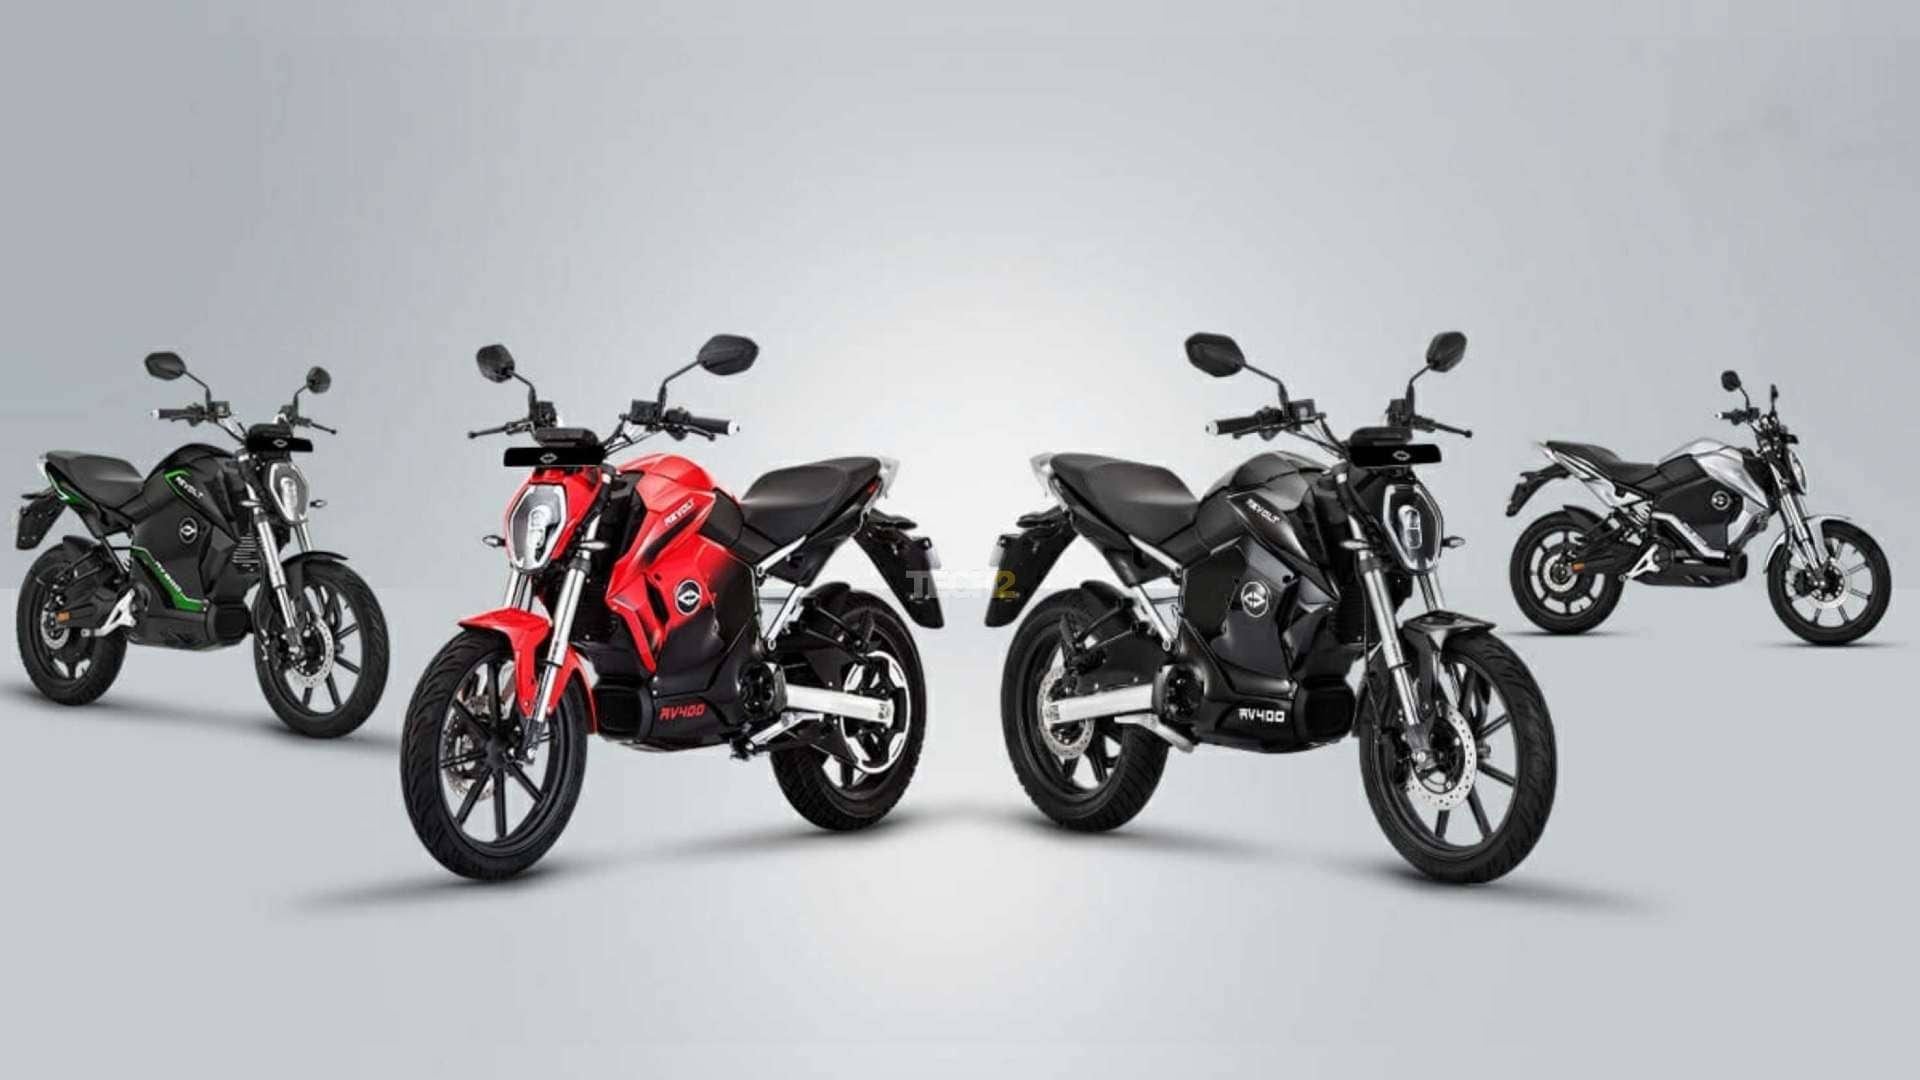 Revolt RV400, RV300 e-motorcycle bookings temporarily closed in India as demand soars- Technology News, Gadgetclock